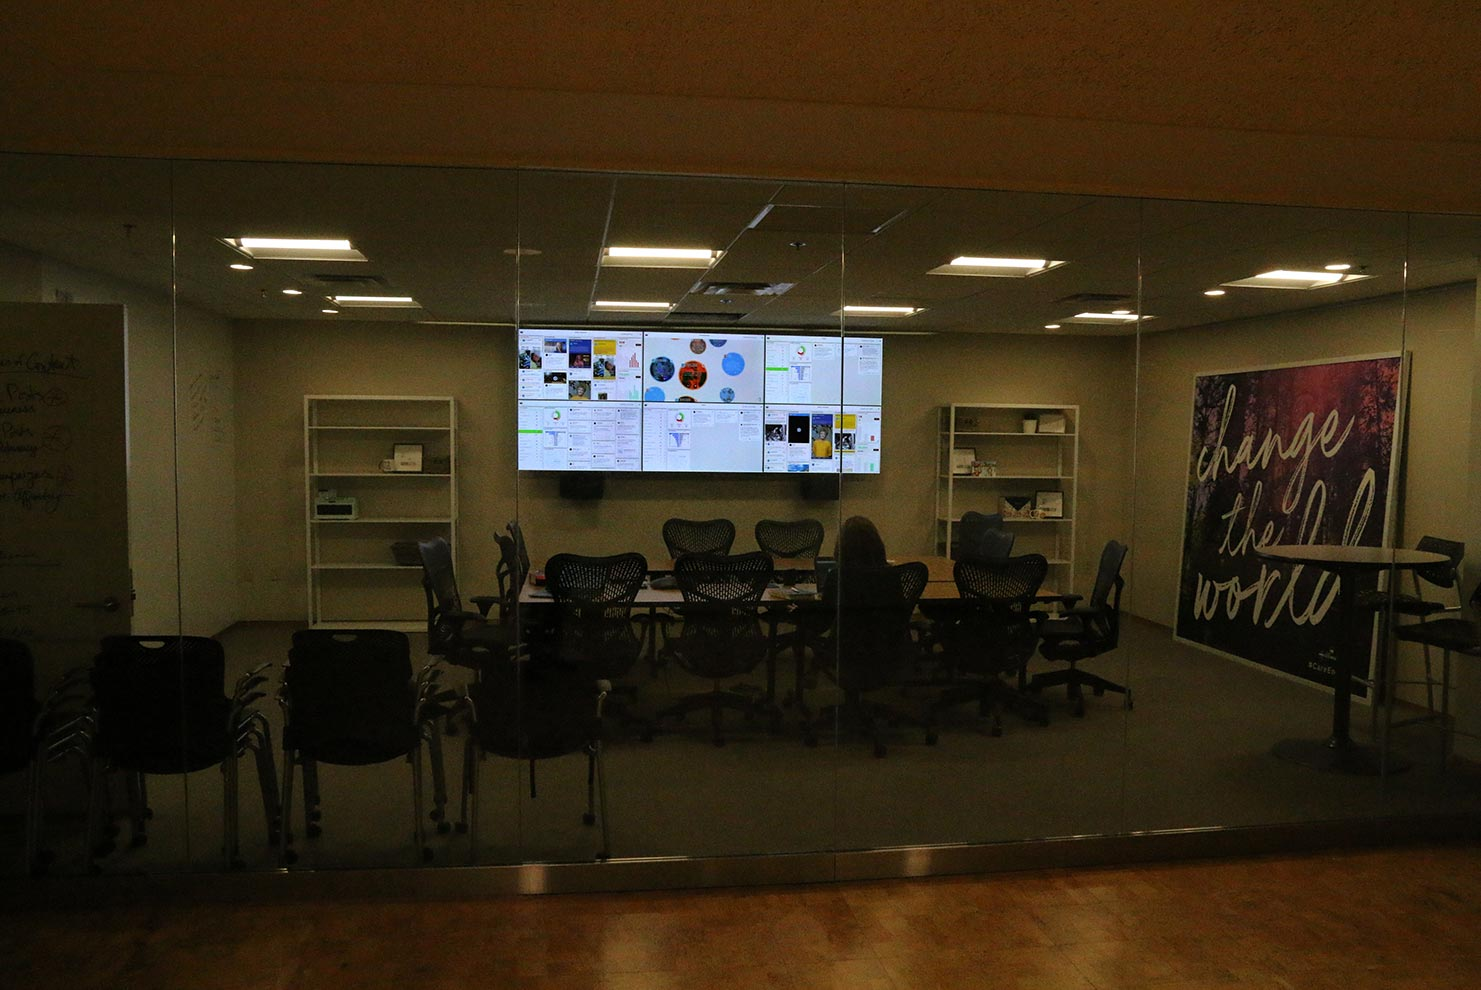 In-Person and Virtual: Office of the Future